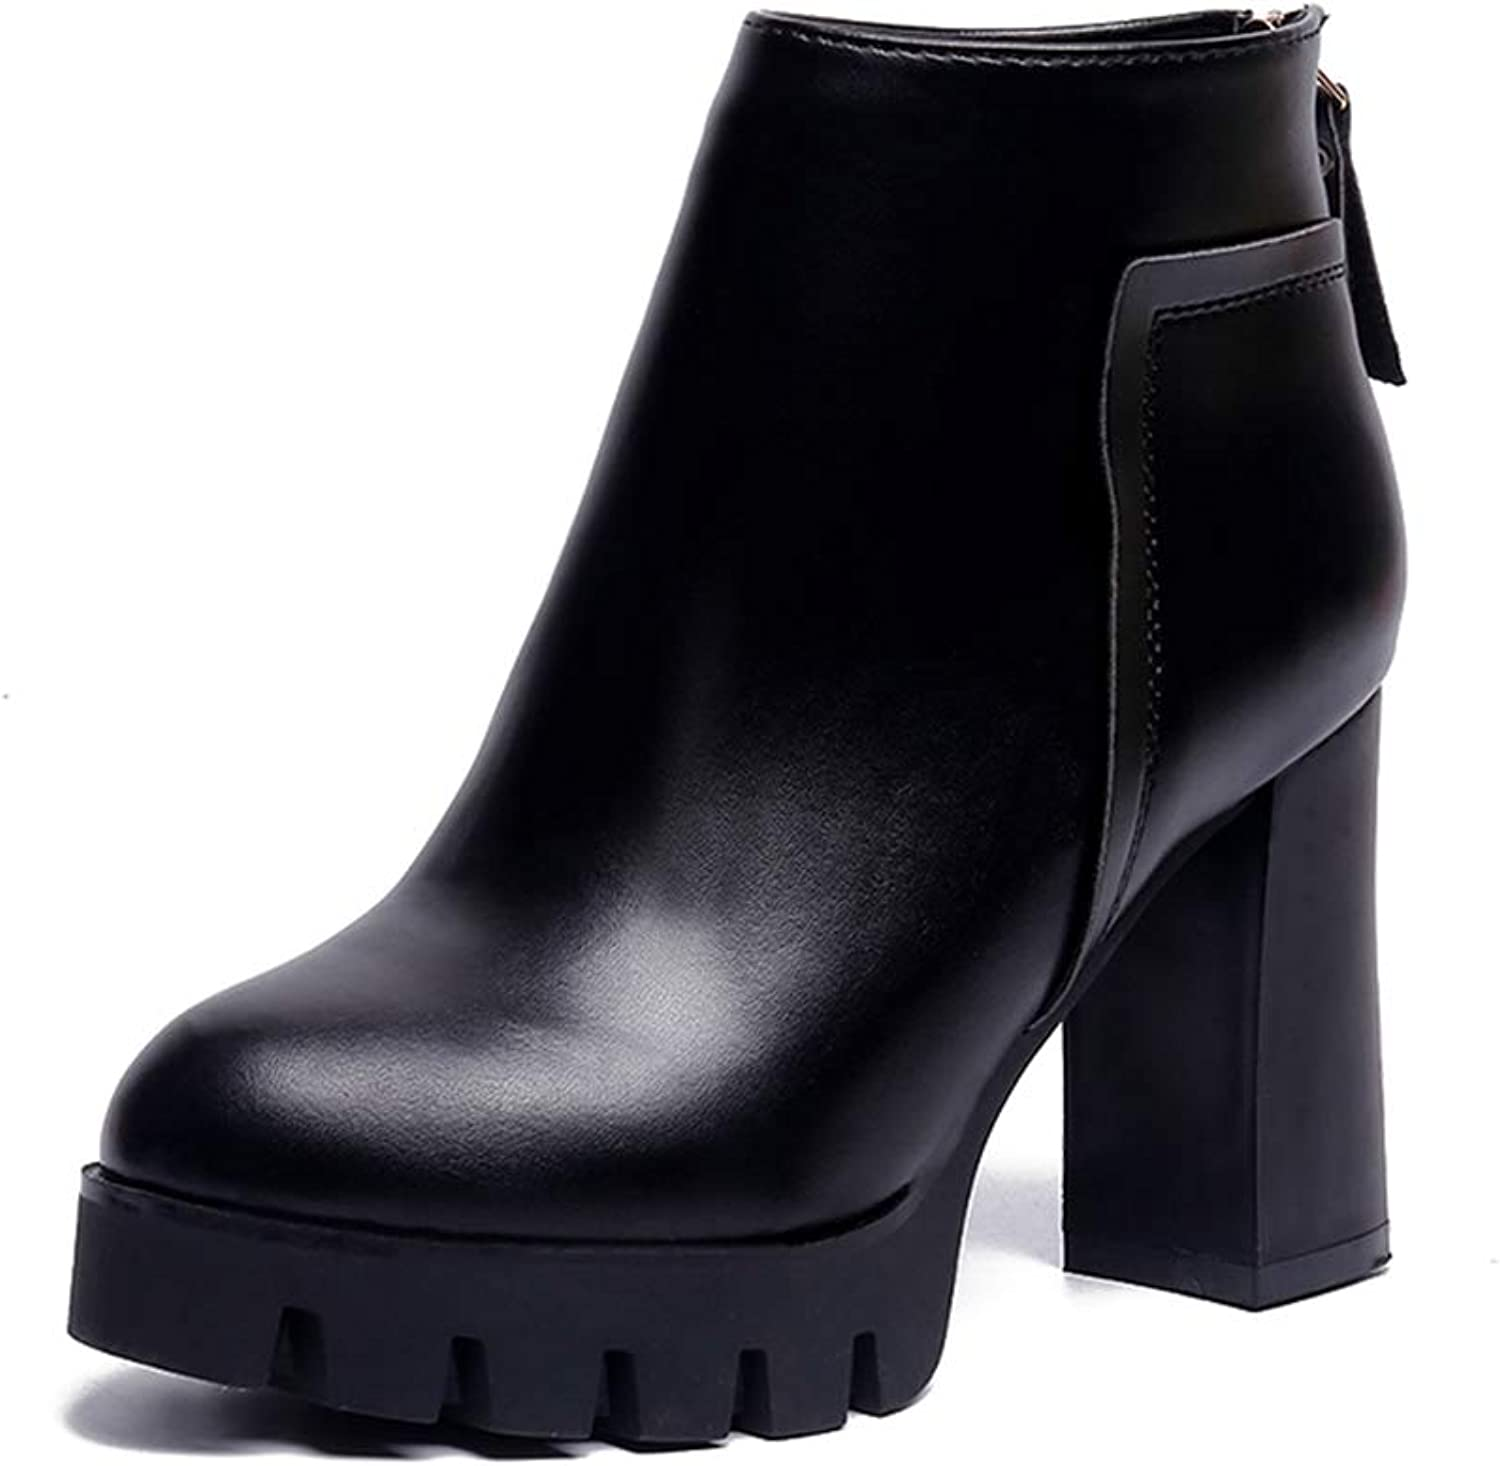 T-JULY Autumn Winter Women Classic Sexy Ankle Boots Leather Platform High Square Heel Booties